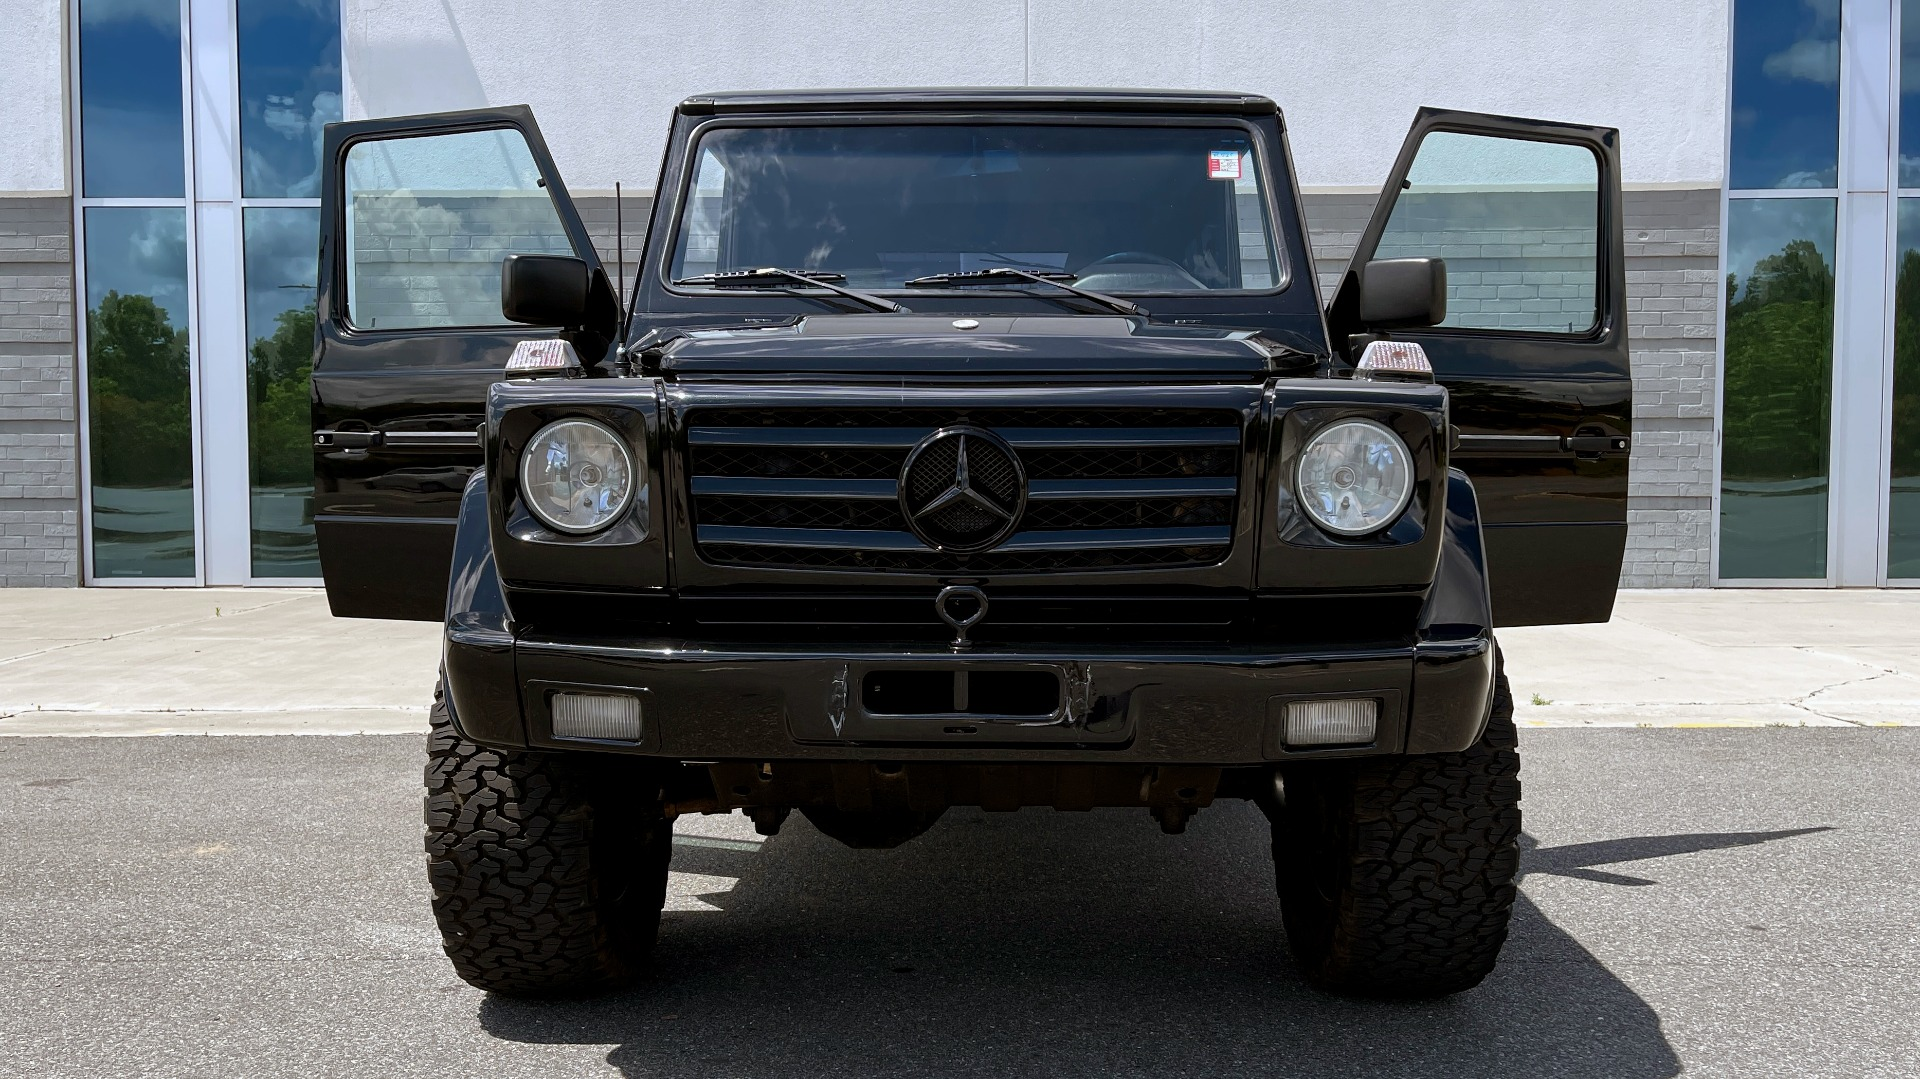 Used 1993 Mercedes-Benz 300GE 5-SPD MAN / 3.0L IN-LINE SIX 168HP / 4X4 / RARE - RUNS GREAT! for sale $69,999 at Formula Imports in Charlotte NC 28227 6